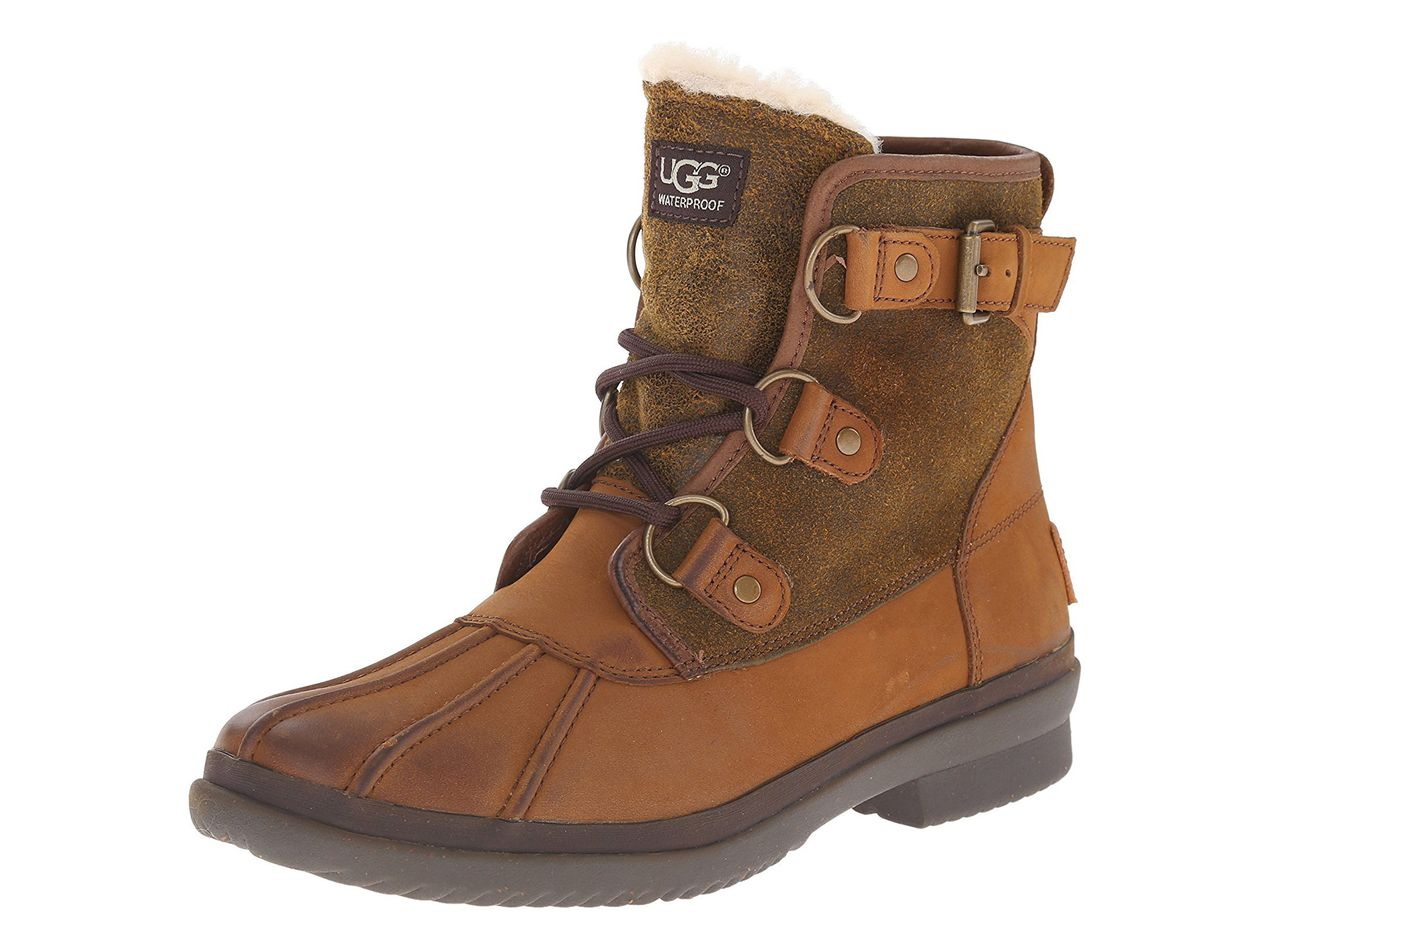 UGG Women's Cecile Winter Boot